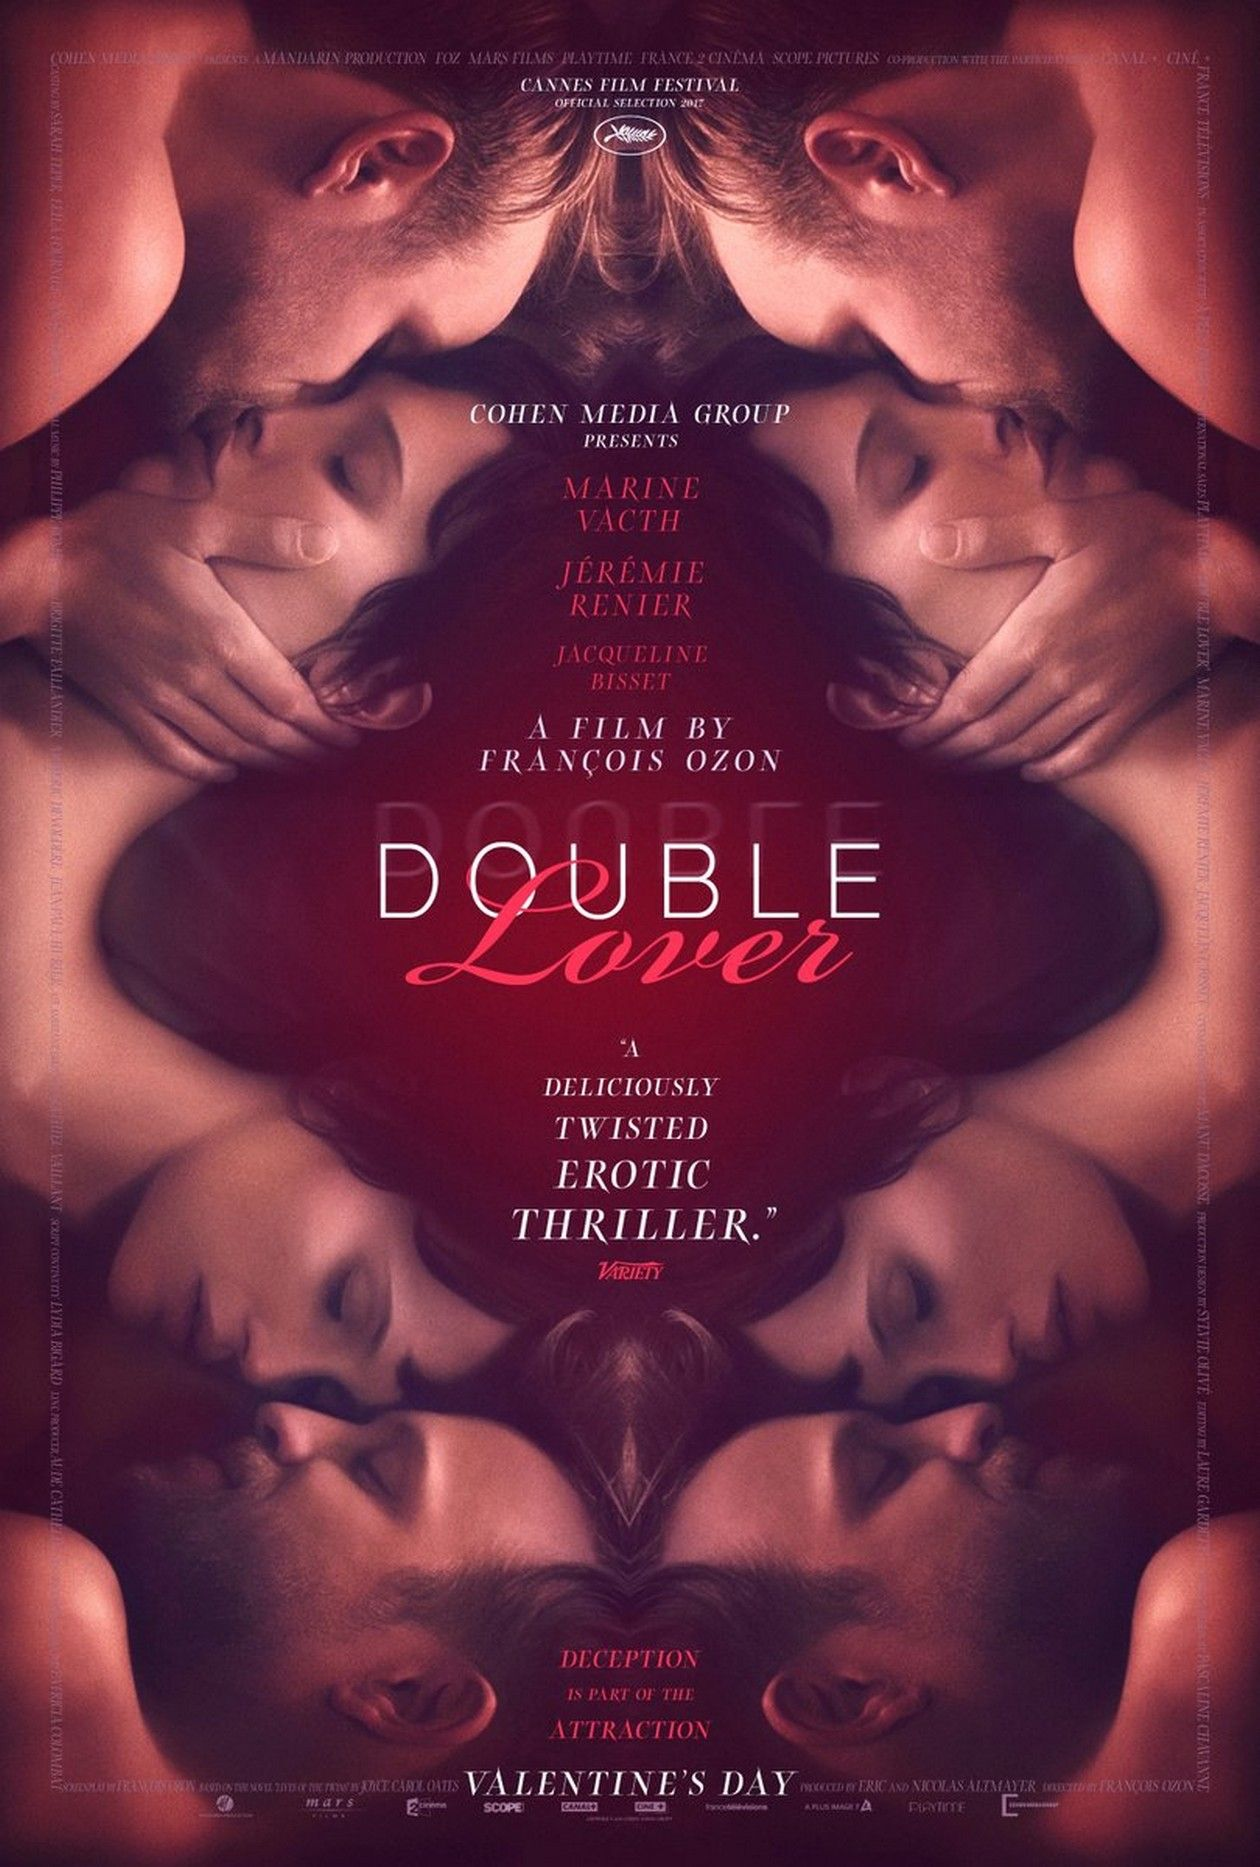 Marine Vacth actress | Double Lover / François Ozon / US MOVIE POSTER / Affiche américaine du film / VALENTINE'S DAY